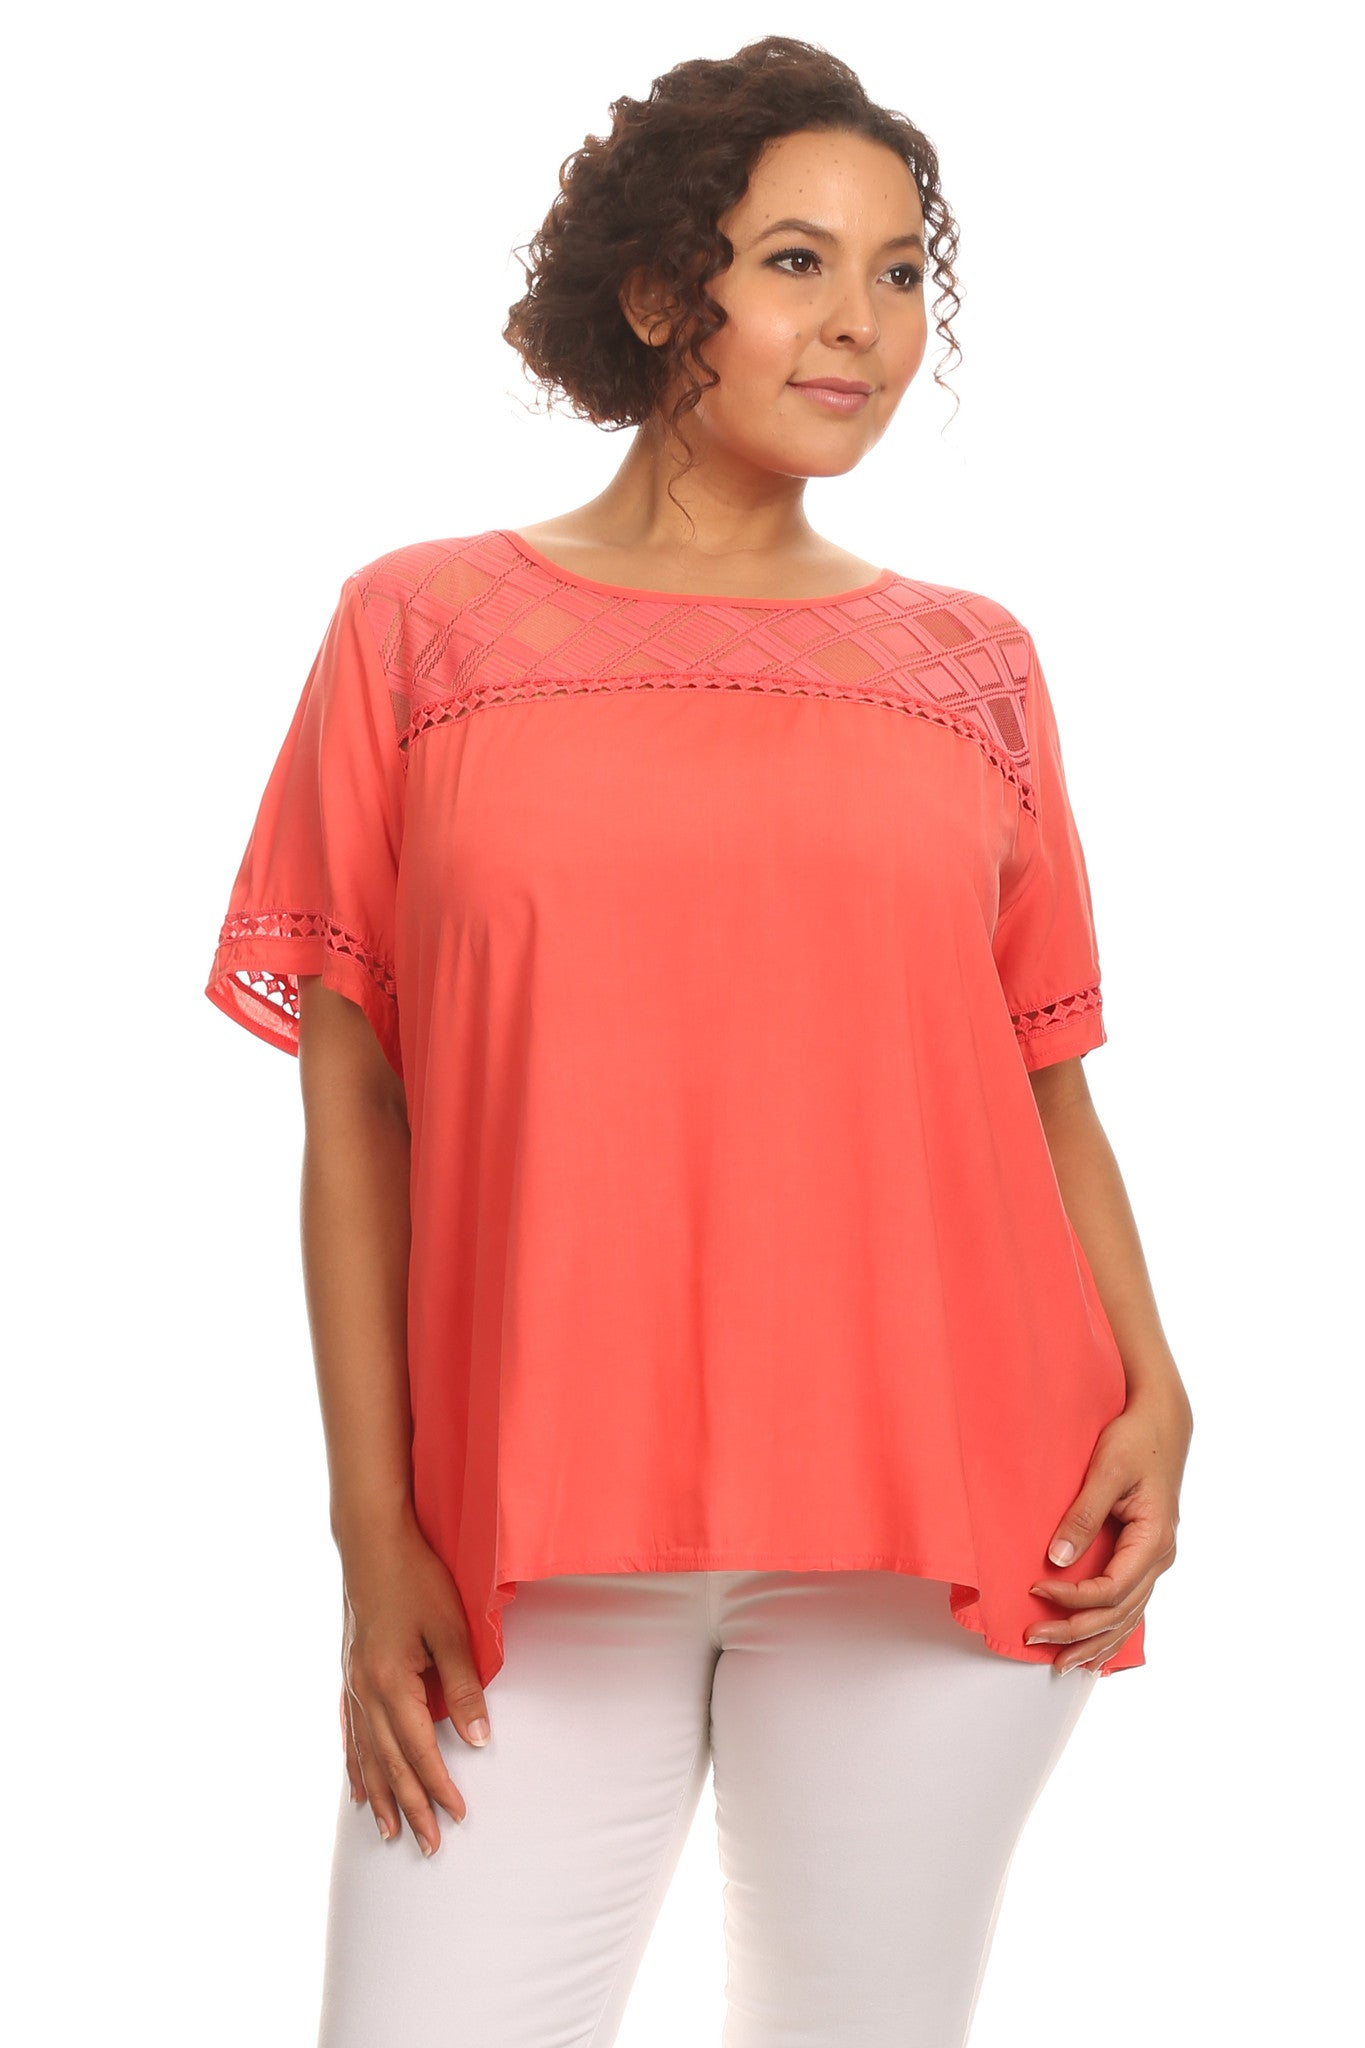 Plus Size Casual Short Sleeve Blouse